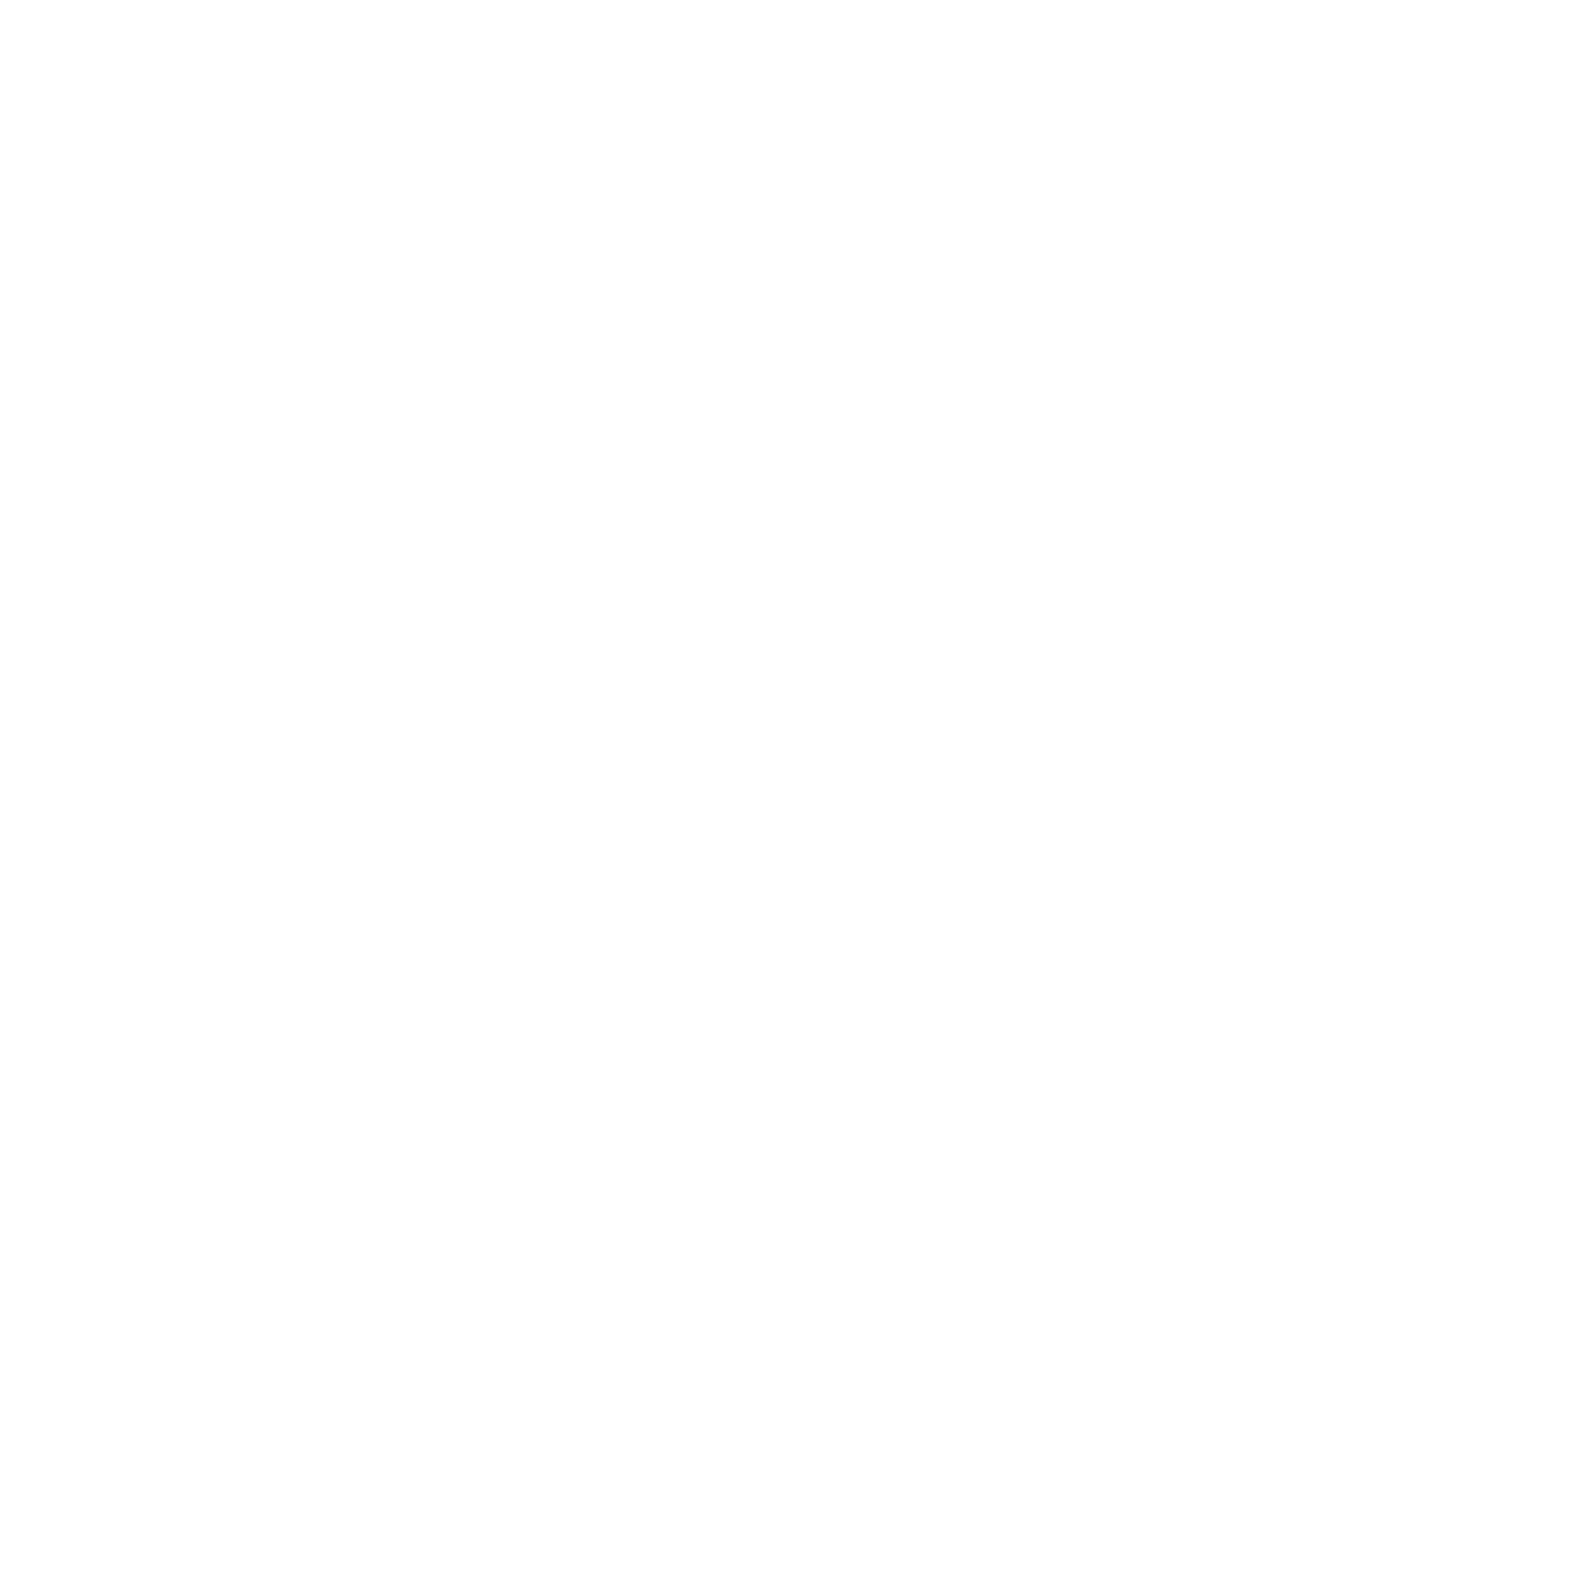 Europe Market (Outlet Store)